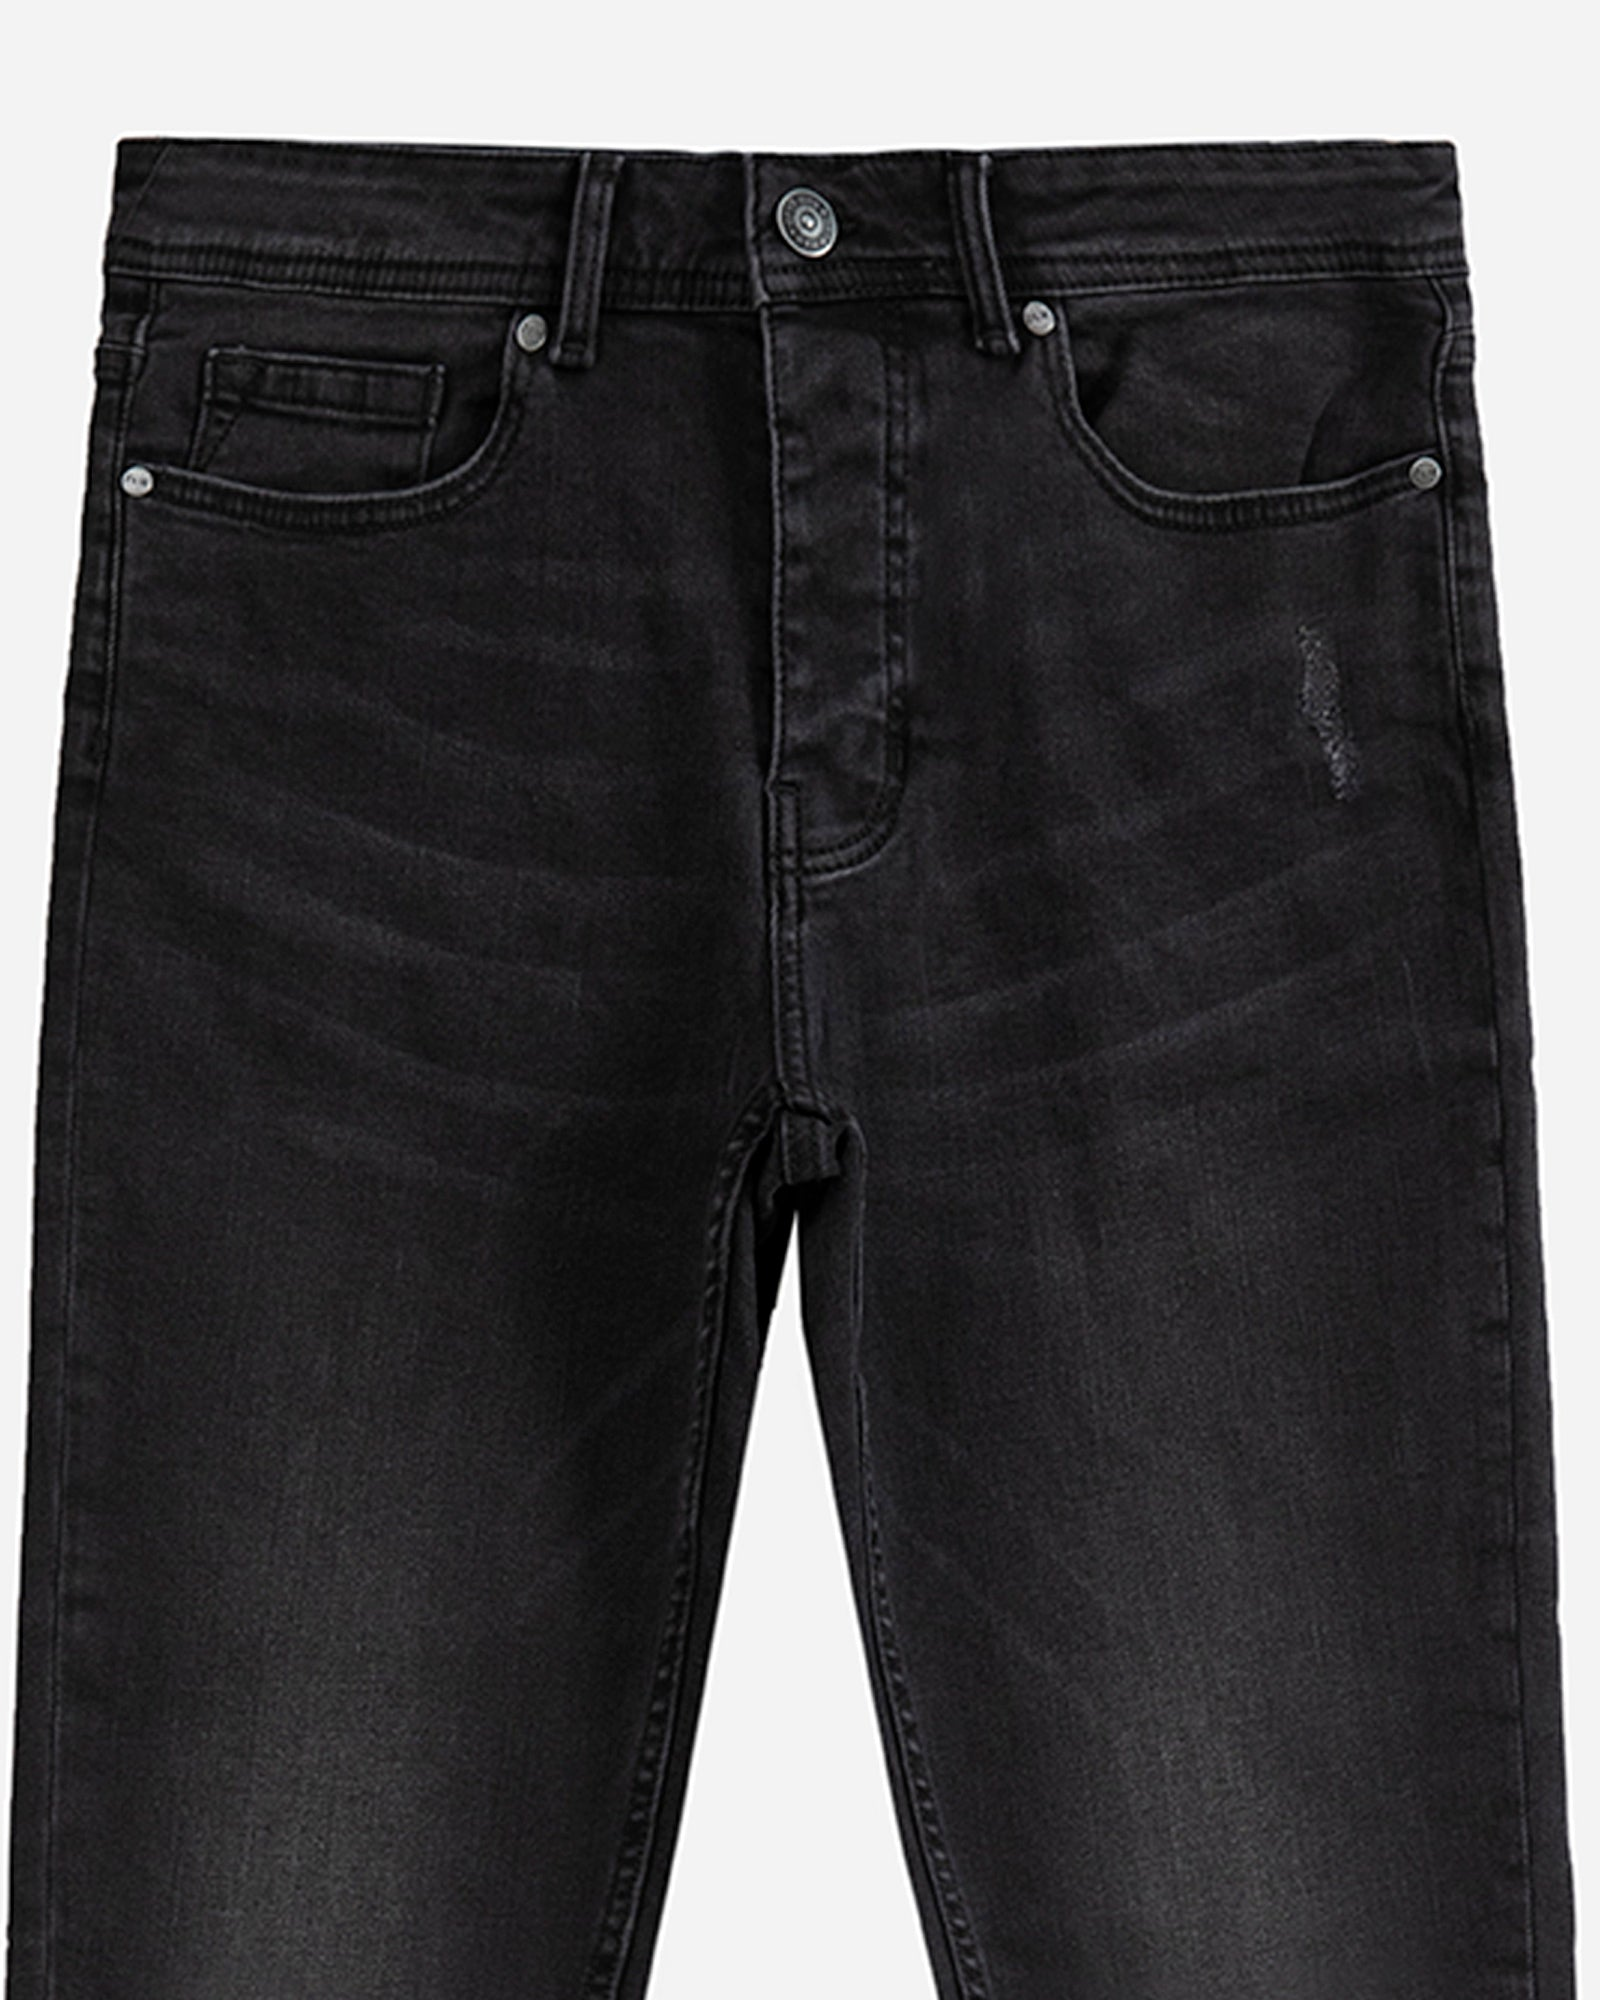 Rugged Effect Carrot Fit Jeans